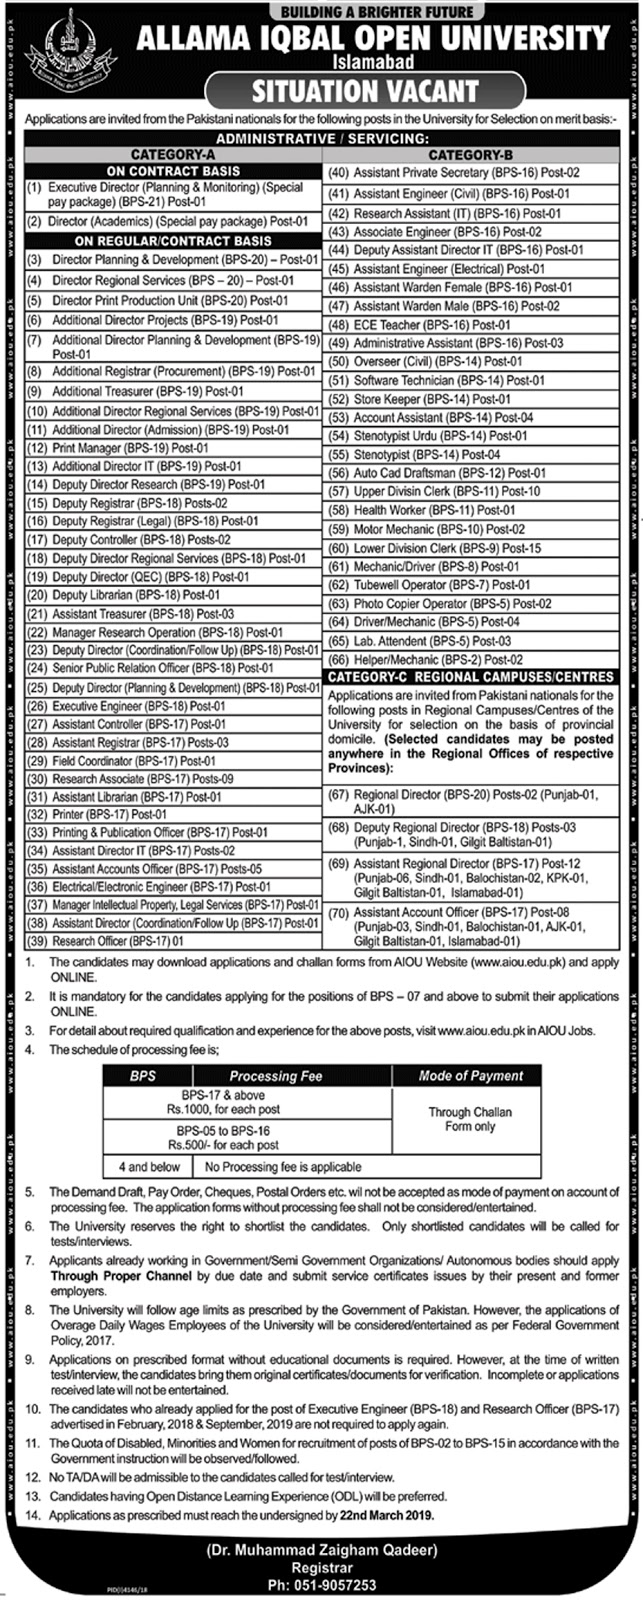 Allama Iqbal Open University Jobs 2019 apply now IT, Admin, Accounts/Finance, Engineering, Library, Research, Legal, Management & Other Posts